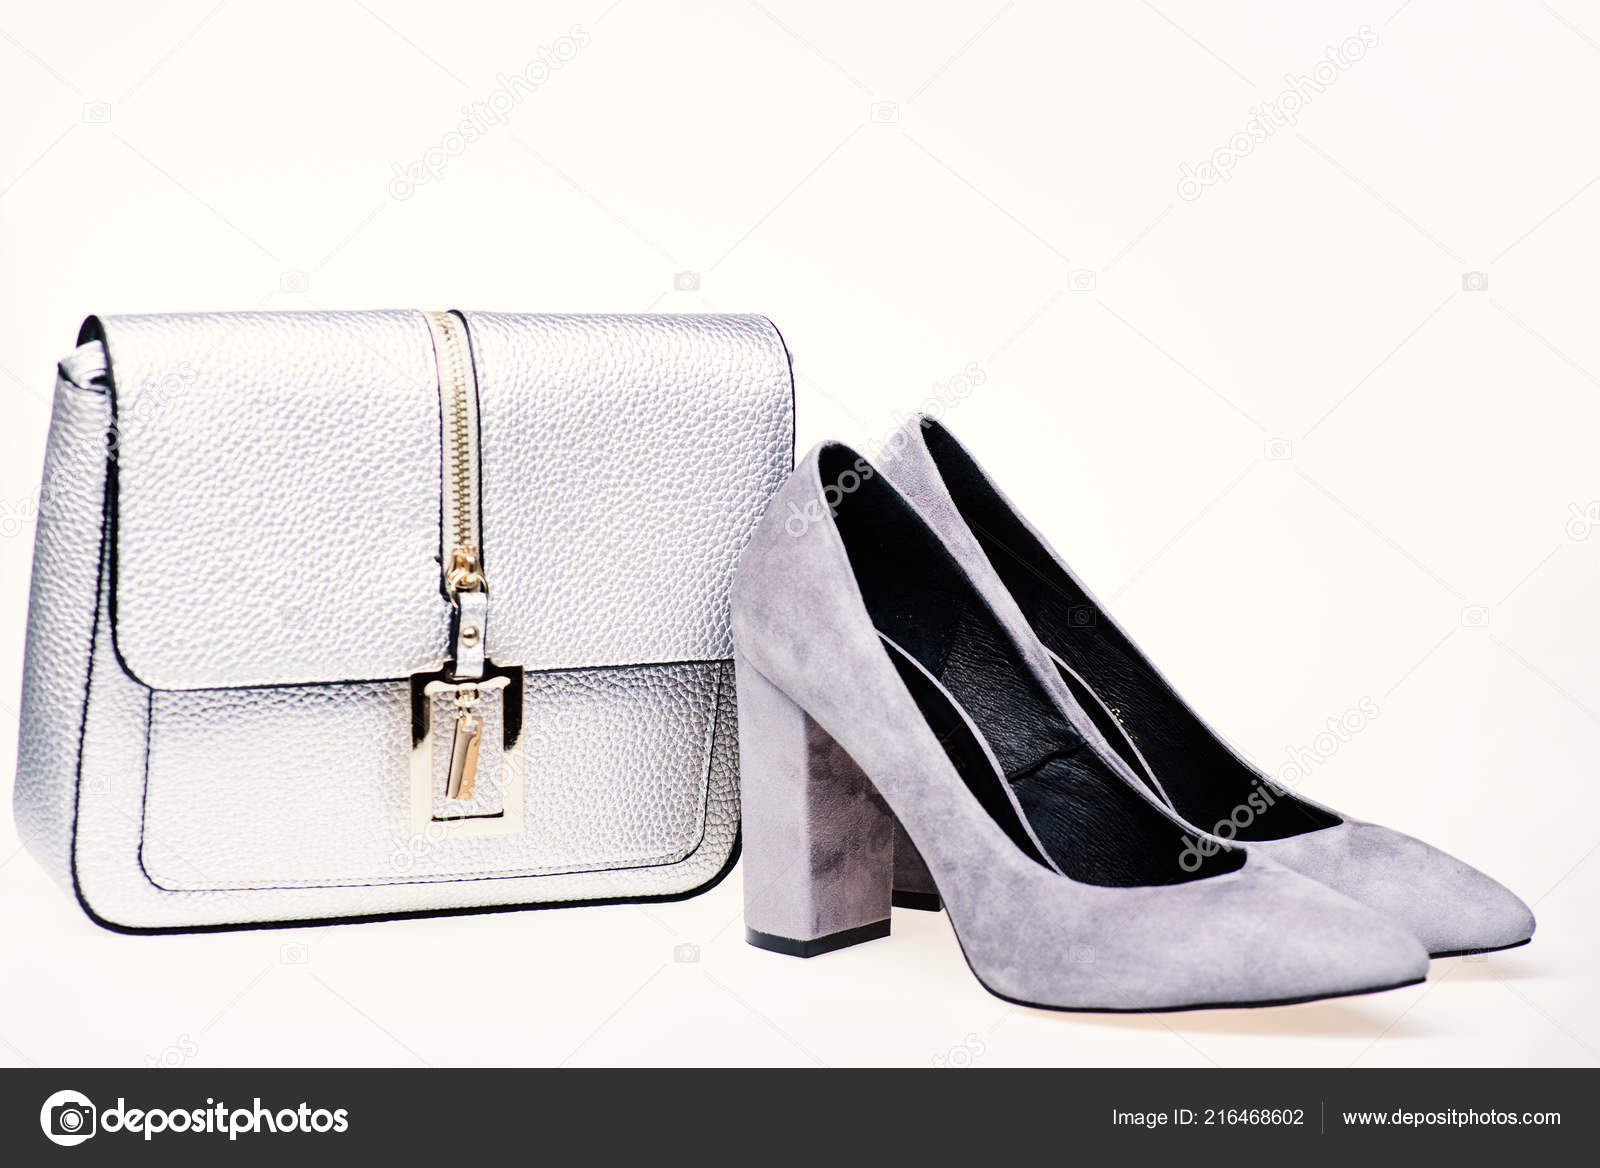 597d08a8972 Shoes made out of grey suede on white background. Pair of fashionable high  heeled shoes and silver purse. Footwear for women with thick high heels and  bag